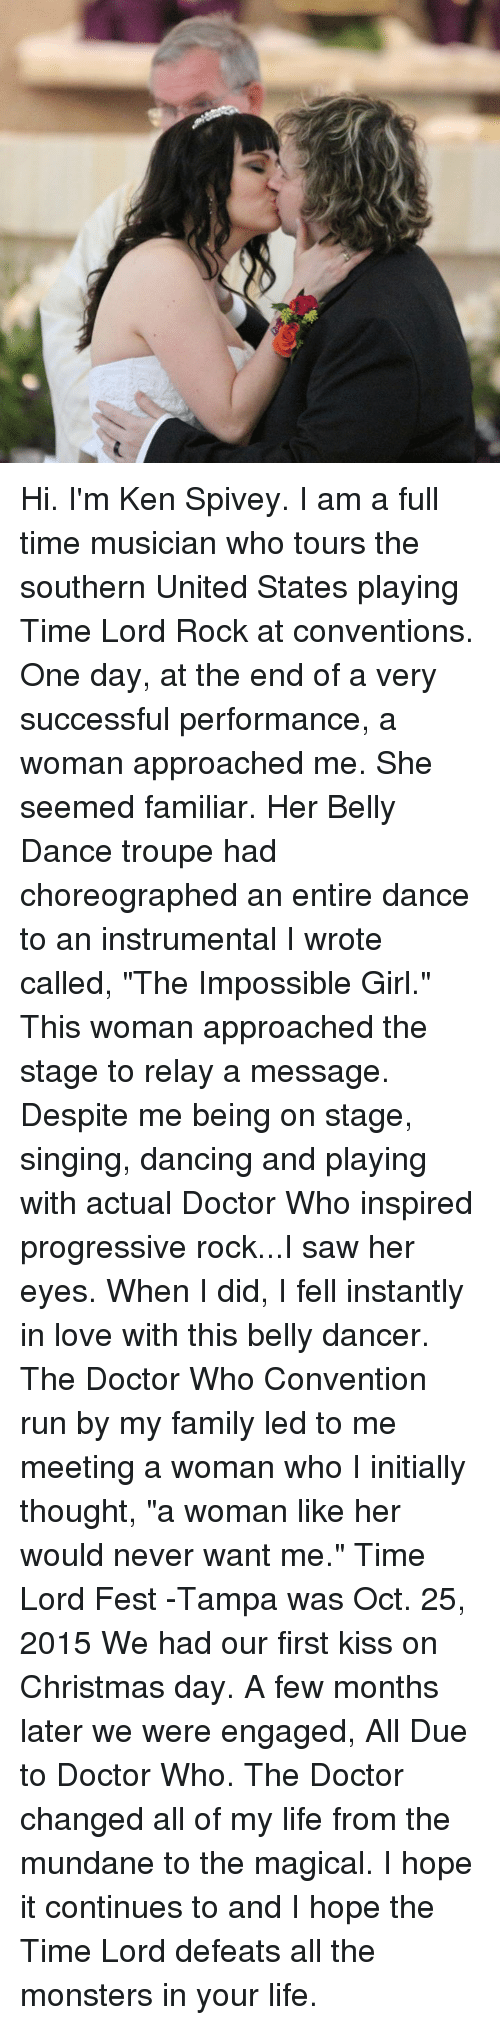 """belly dancer: Hi.  I'm Ken Spivey.   I am a full time musician who tours the southern United States playing Time Lord Rock at conventions.   One day, at the end of a very successful performance, a woman approached me.   She seemed familiar.  Her Belly Dance troupe had choreographed an entire dance to an instrumental I wrote called, """"The Impossible Girl.""""  This woman approached the stage to relay a message.  Despite me being on stage, singing, dancing and playing with actual Doctor Who inspired progressive rock...I saw her eyes.   When I did, I fell instantly in love with this belly dancer.  The Doctor Who Convention run by my family led to me meeting a woman who I initially thought, """"a woman like her would never want me.""""  Time Lord Fest -Tampa was Oct. 25, 2015 We had our first kiss on Christmas day. A few months later we were engaged,  All Due to Doctor Who.  The Doctor changed all of my life from the mundane to the magical.  I hope it continues to and I hope the Time Lord defeats all the monsters in your life."""